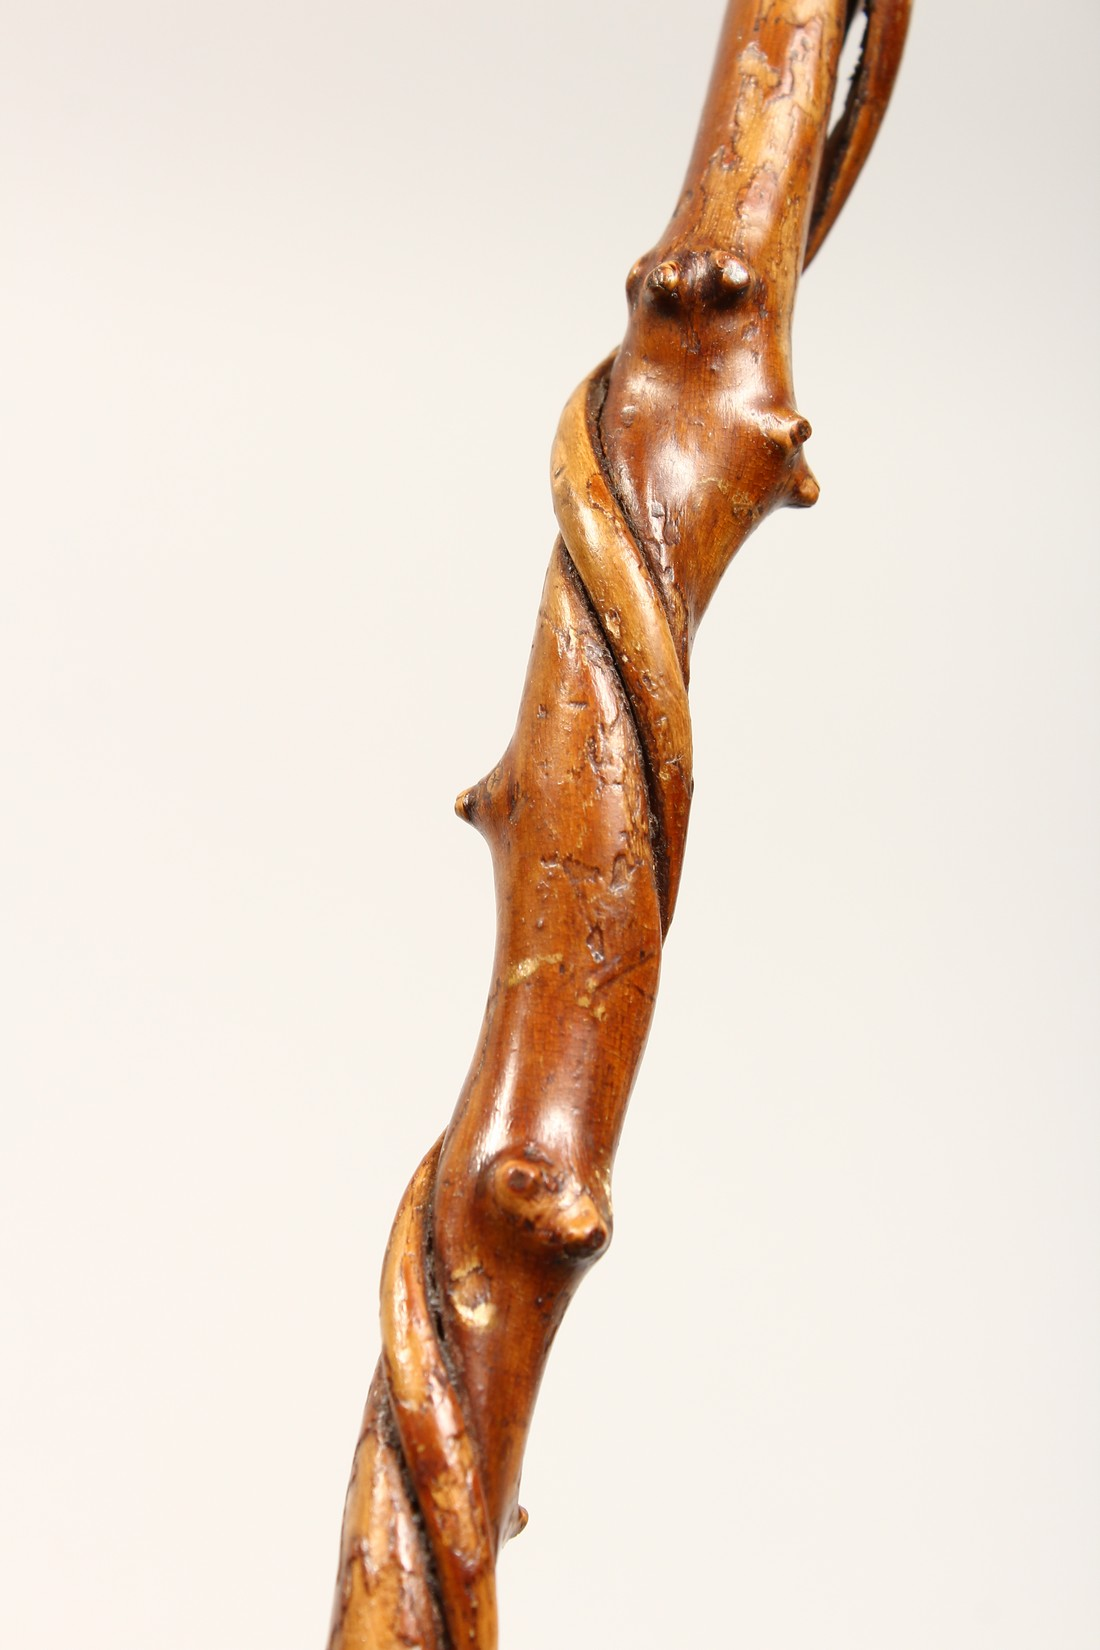 A SMALL DOG'S HEAD WALKING STICK 26ins long - Image 7 of 11